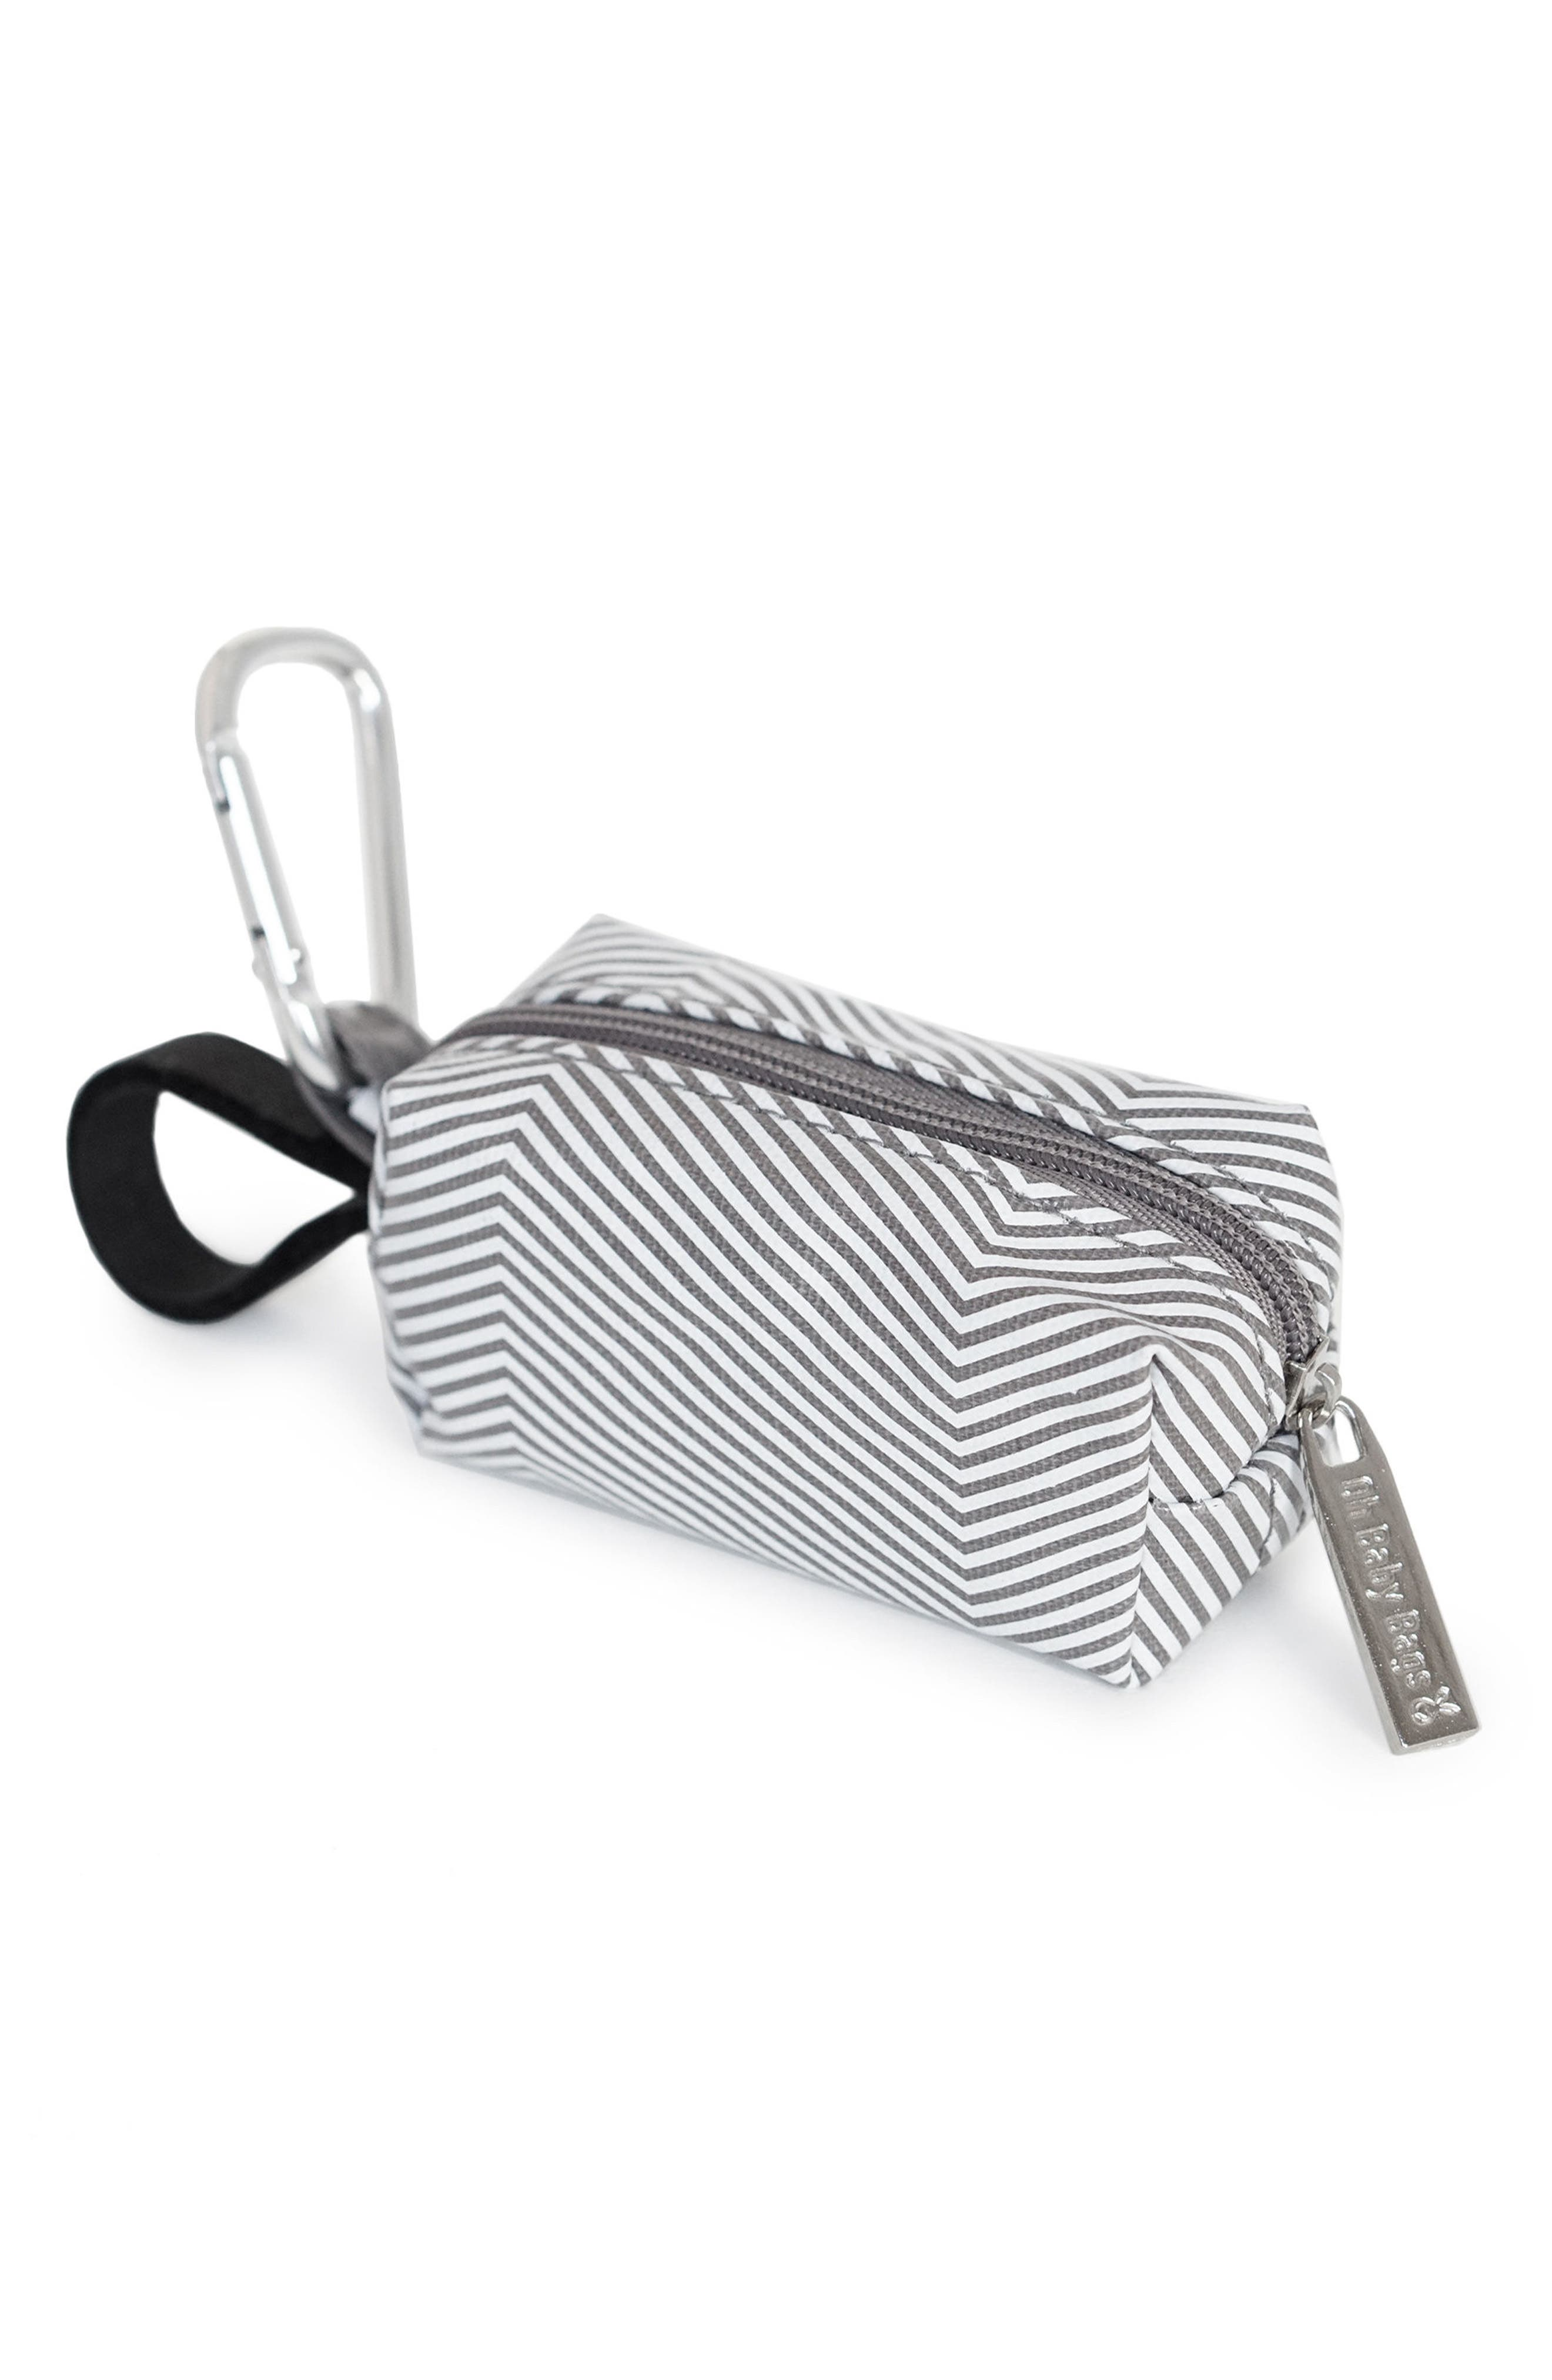 Portable Clip-On Dispenser with Bags,                             Main thumbnail 1, color,                             GREY STRIPE